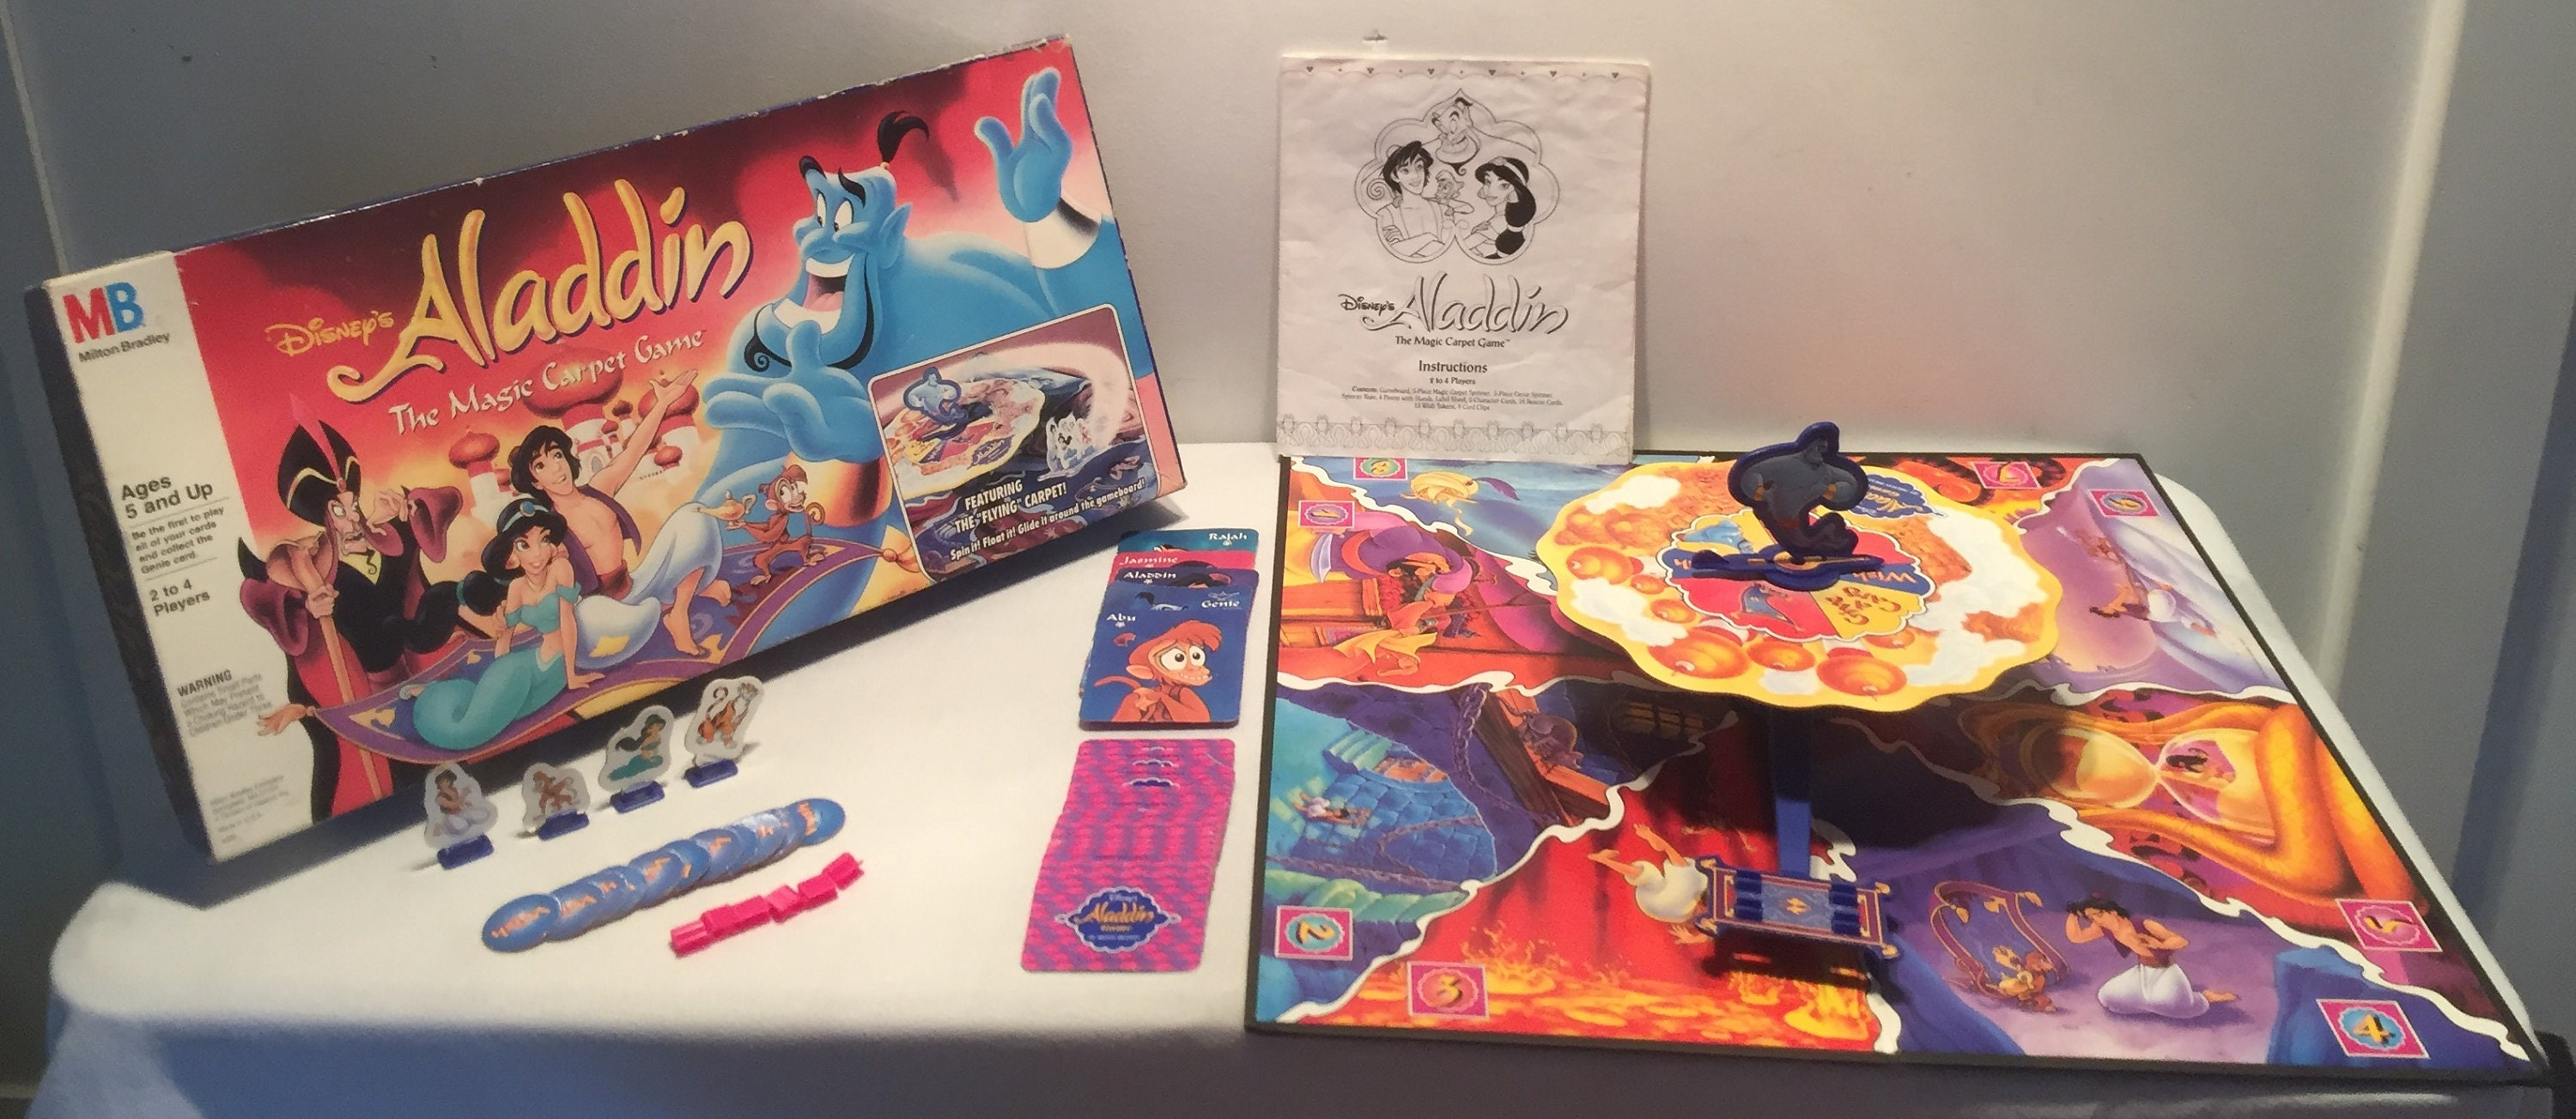 1992 Vintage Walt Disney's Aladdin The Magic Carpet Game Complete in Great Condition FREE SHIPPING